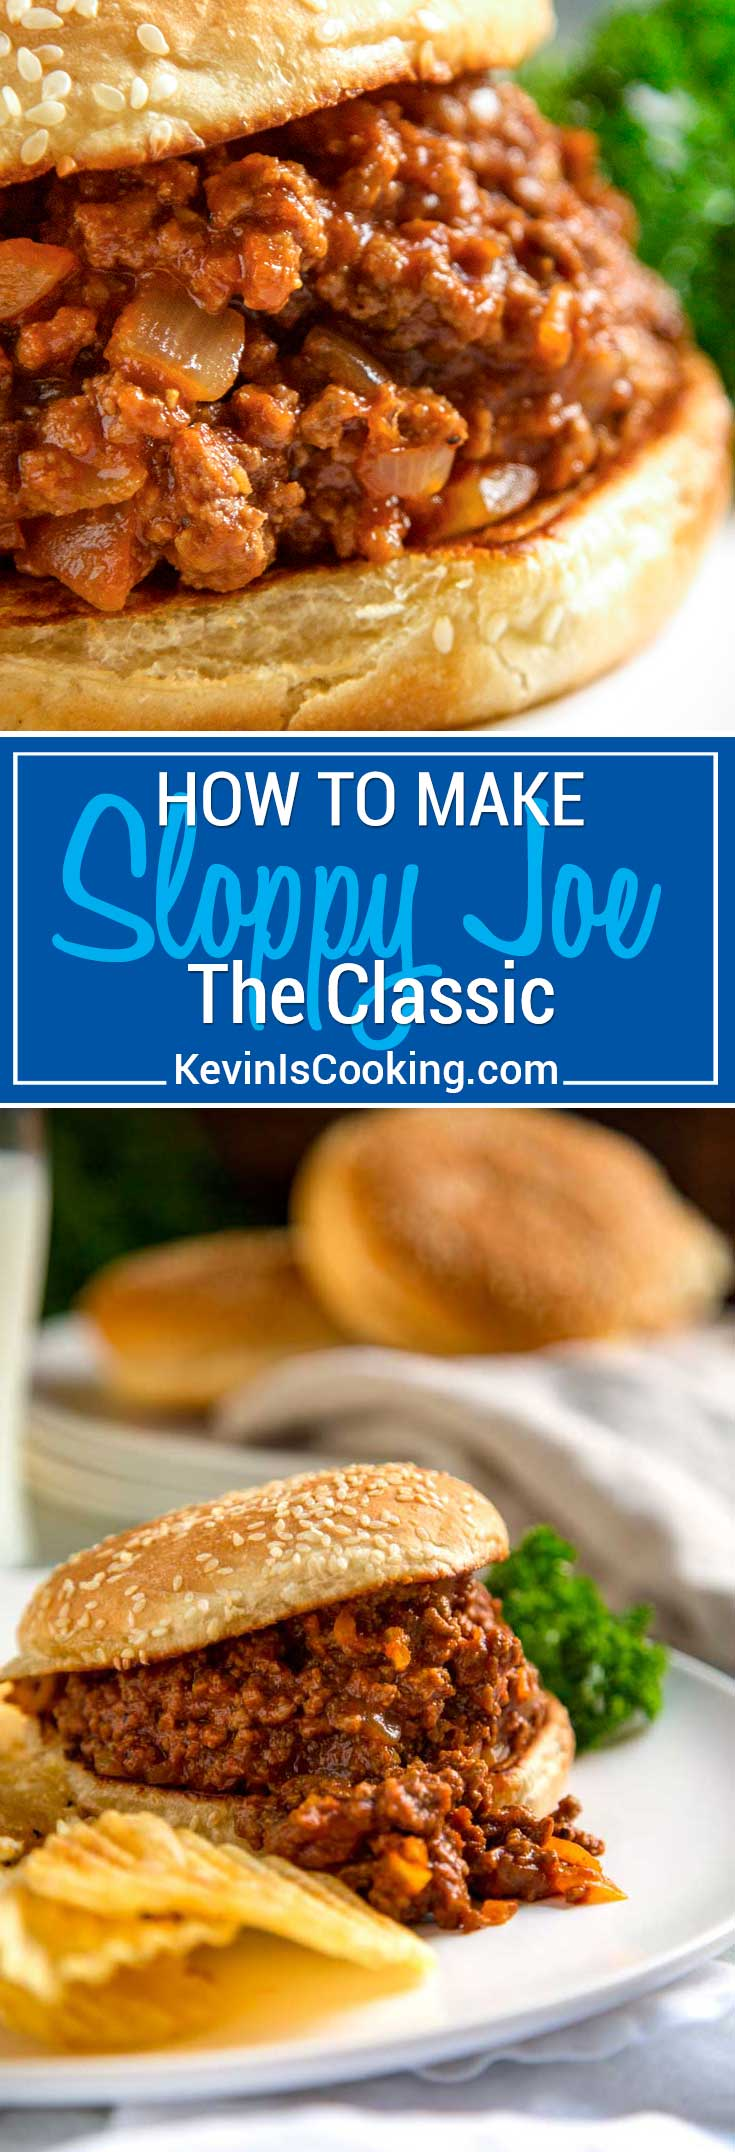 The classic Sloppy Joe sandwich is an American loose meat sandwich, consisting of browned ground beef, tomato sauce, mustard, Worcestershire sauce and other seasonings served on a toasted hamburger bun. #sloppyjoe #sandwich